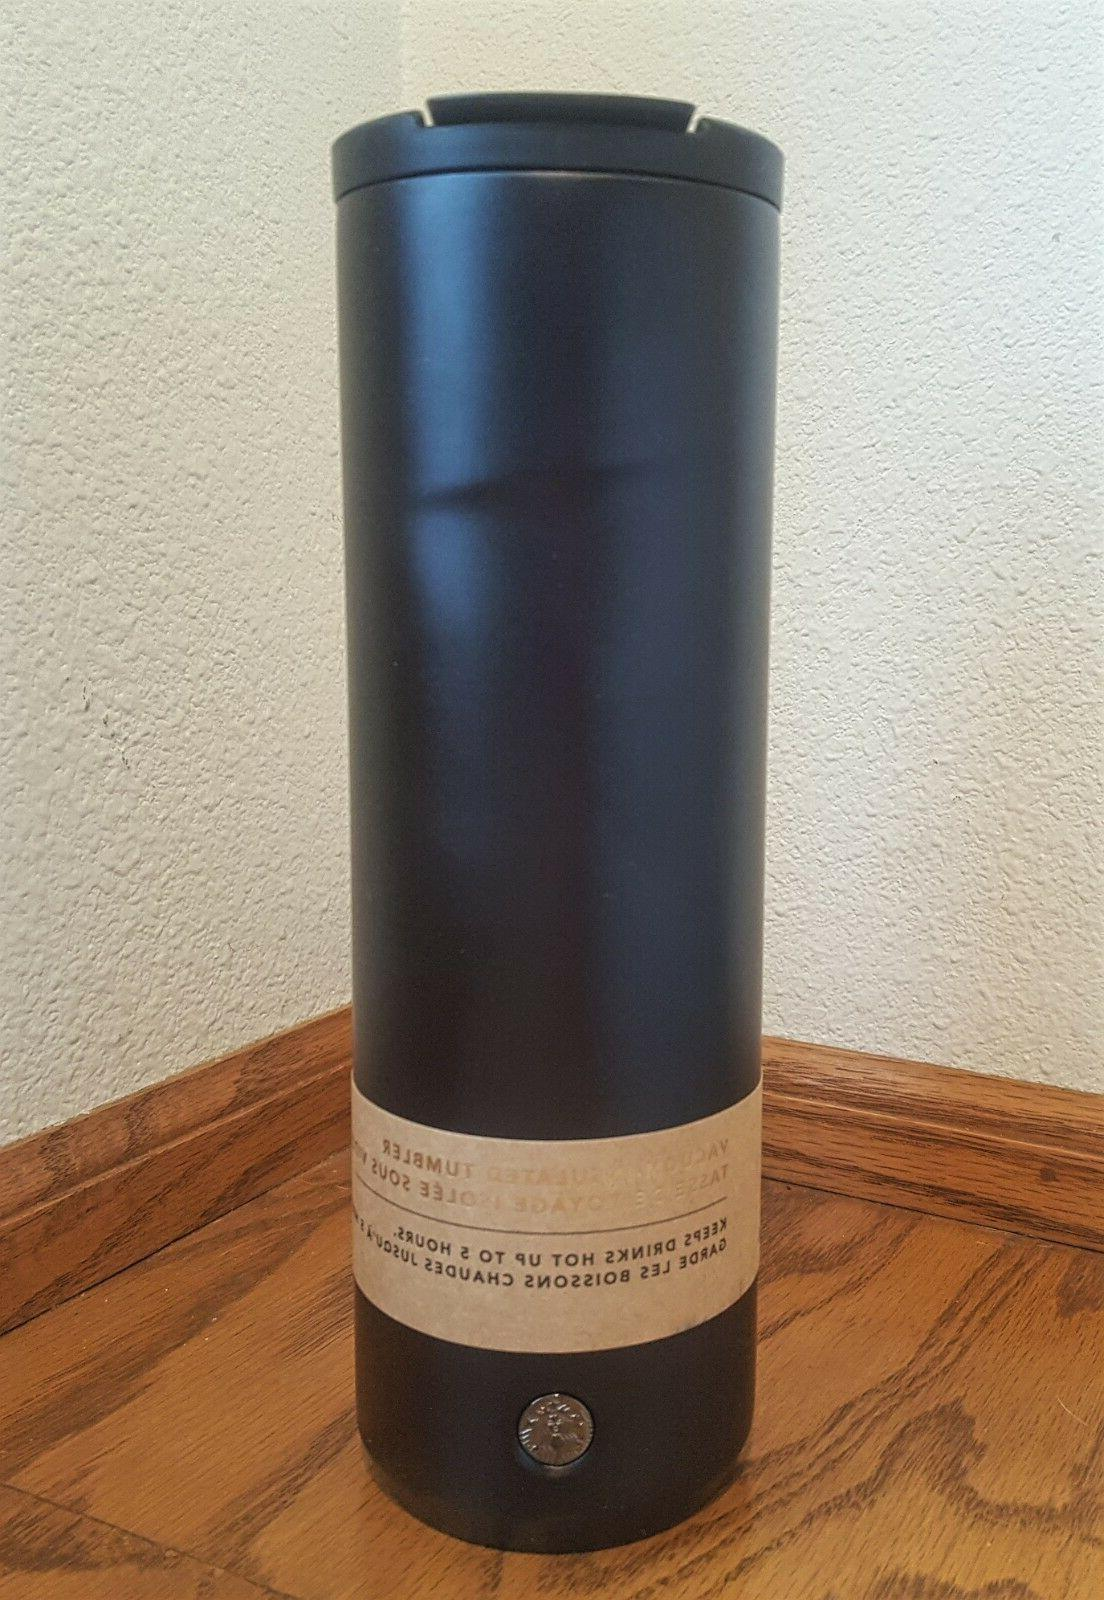 Rare oz Starbucks Stainless Tumbler - Black!